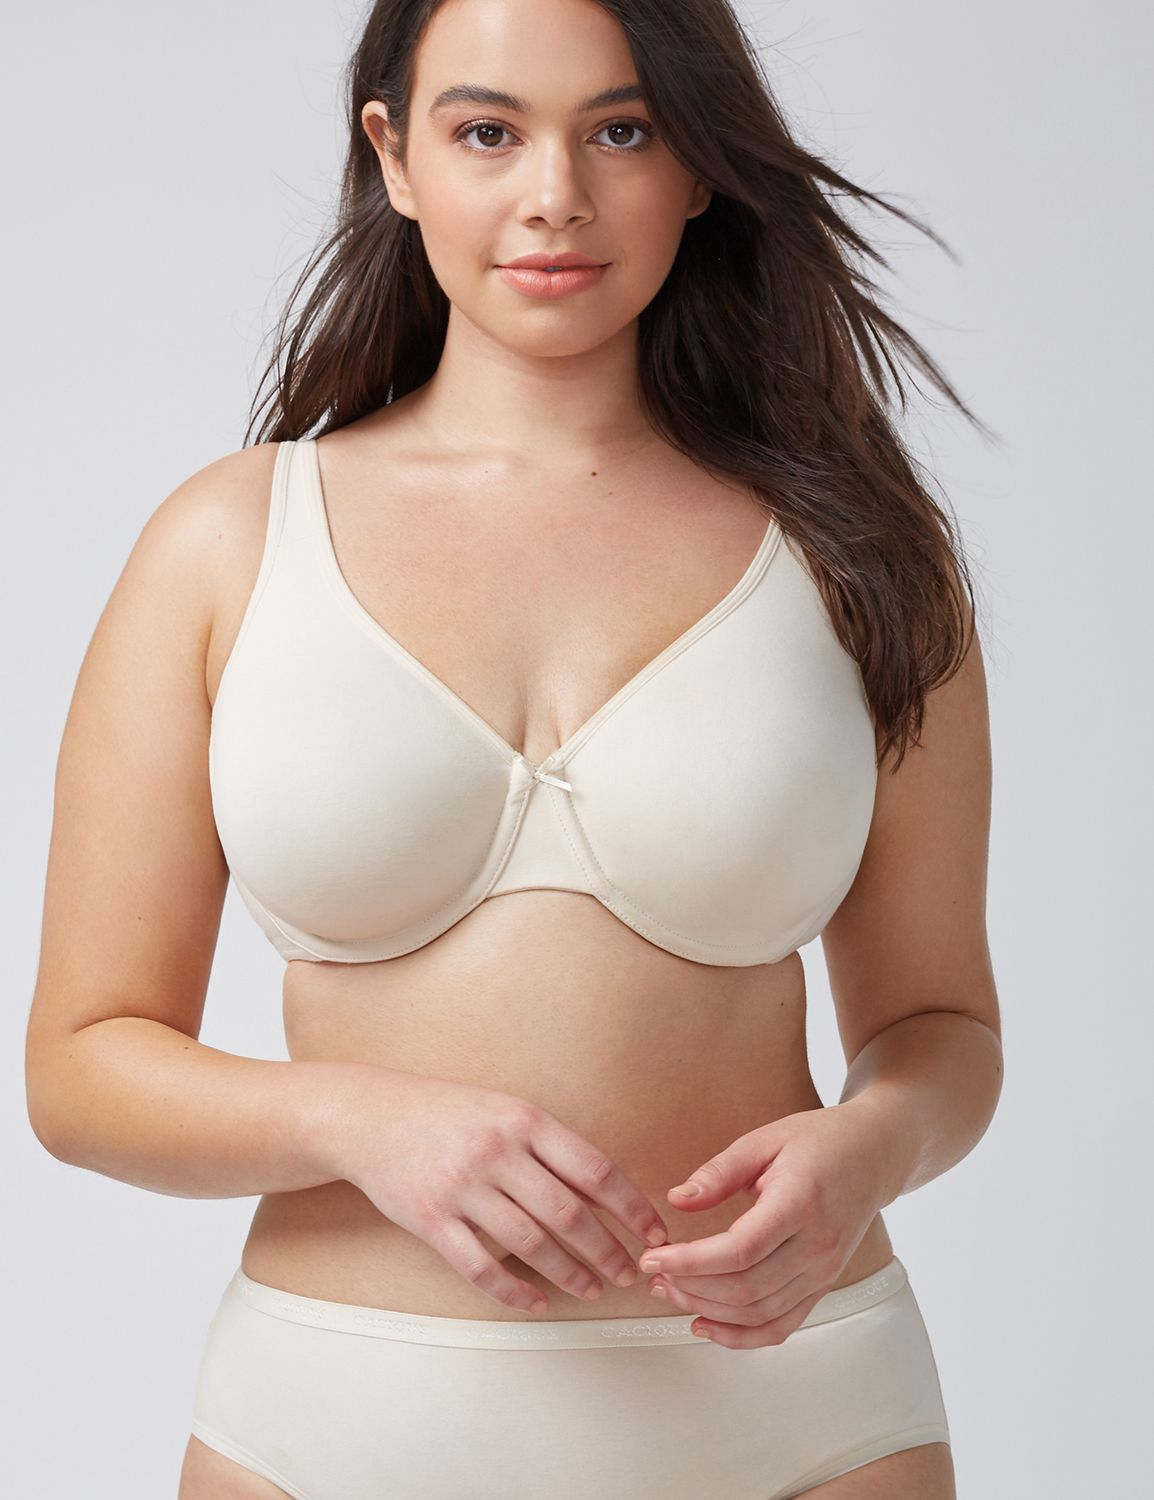 Lane Bryant Womens Cotton Unlined Full Coverage Bra 36D Beige